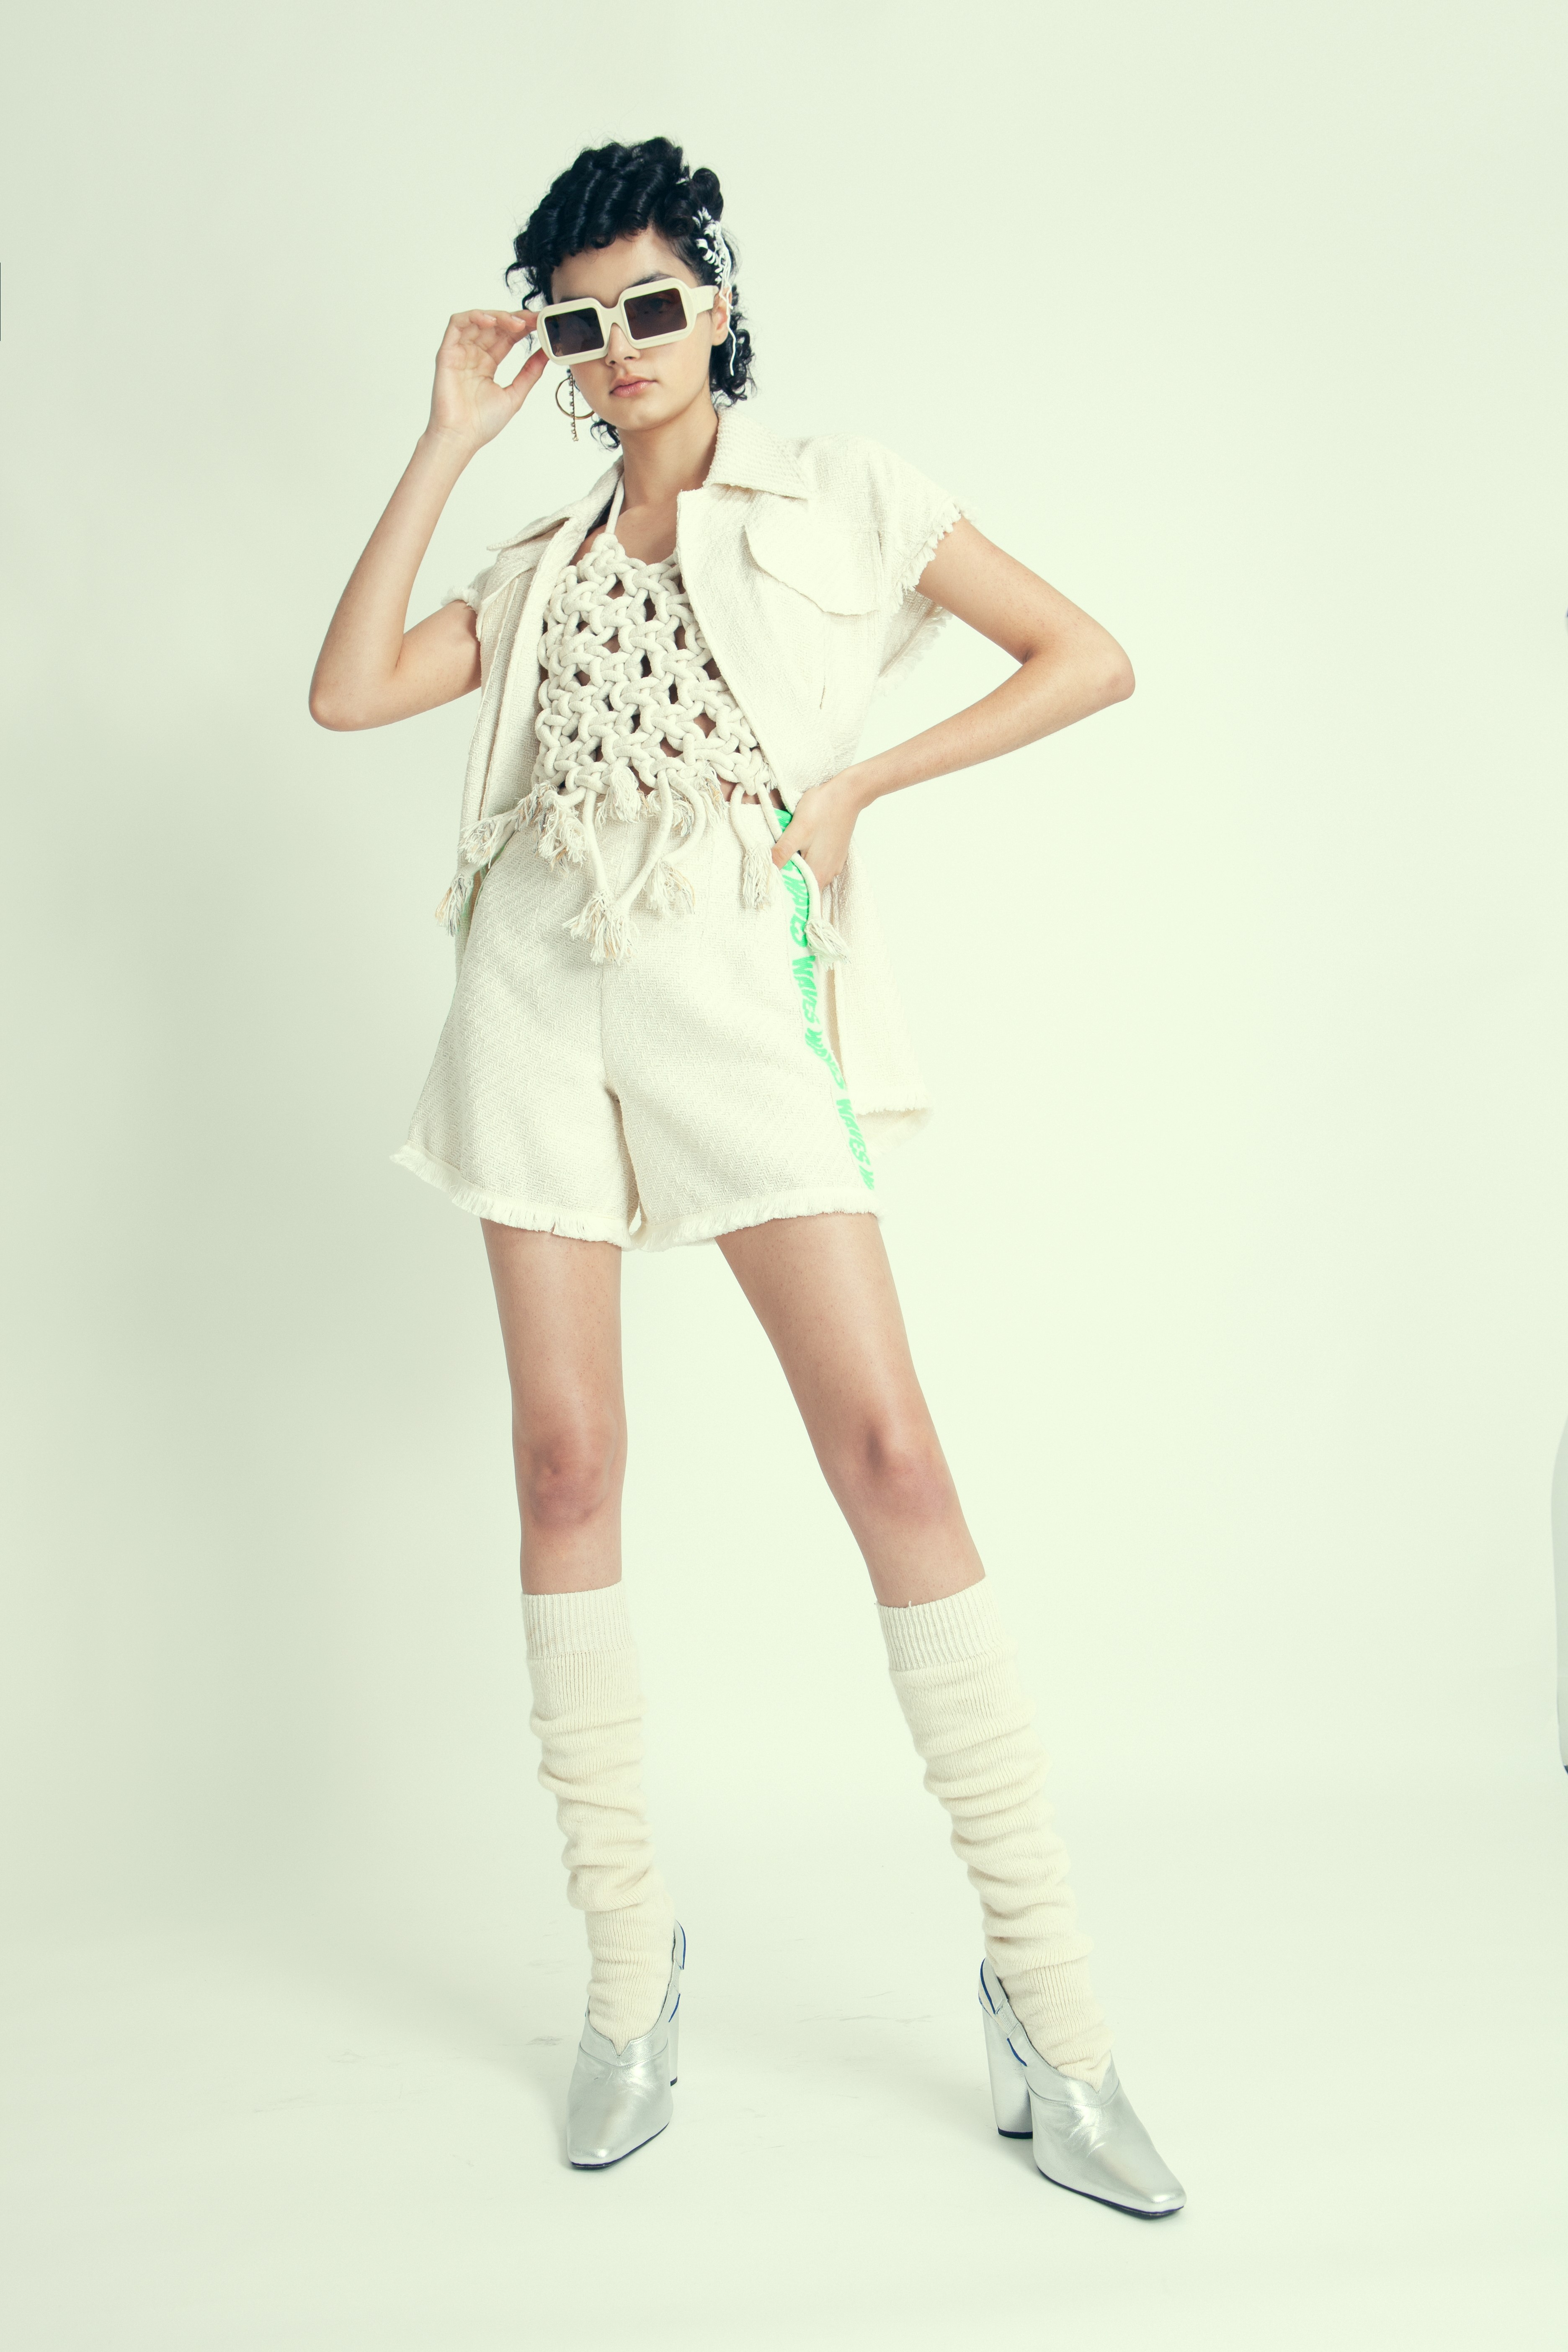 Kiana look 2 Ivory sunglasses : Pawaka Beige knot top : Noémie Devime Beige knitted sleeveless jacket : Nocturne Beige Knitted short with neon green « wave » pattern on the side : Nocturne Socks : stylist own Silver slingback pumps : Adult